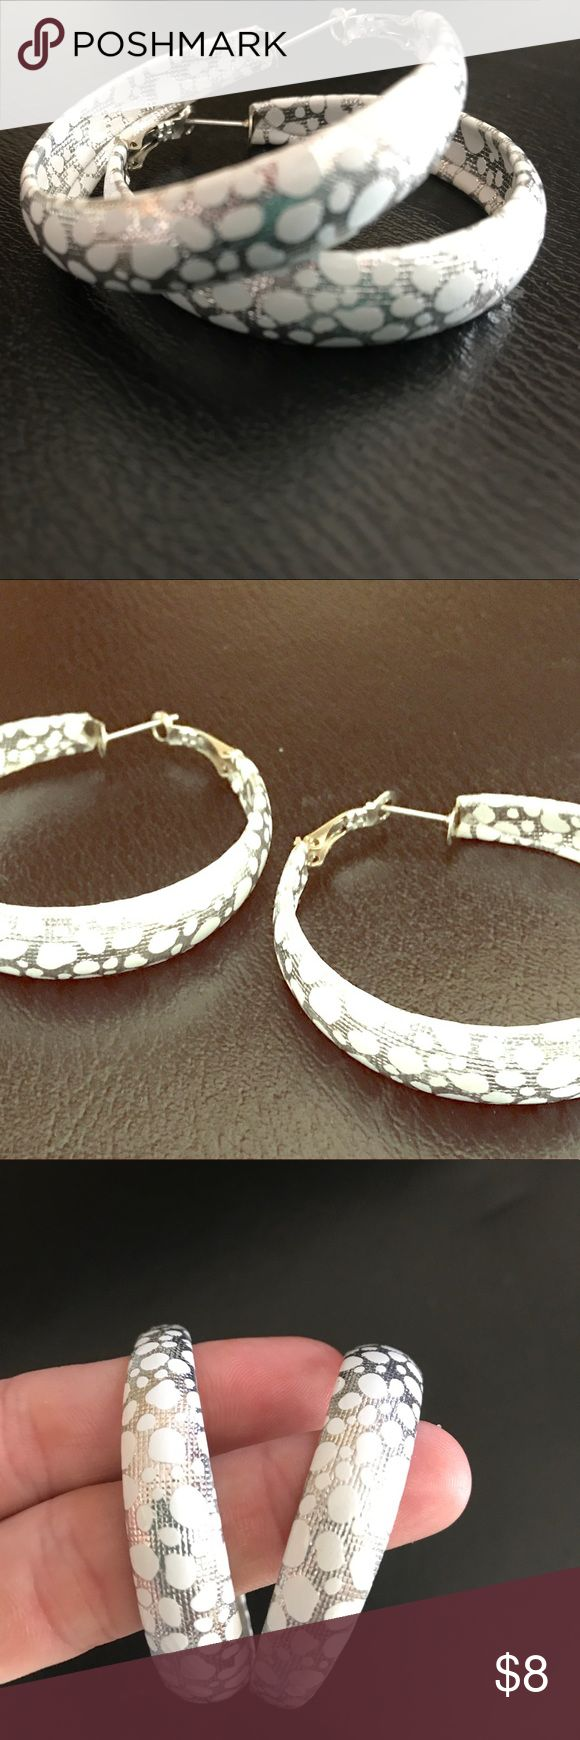 🔥Silver white leopard hoops 🔥 New in package silver colored hoops with white leopard spots are great to complement any outfit come new in package Jewelry Earrings